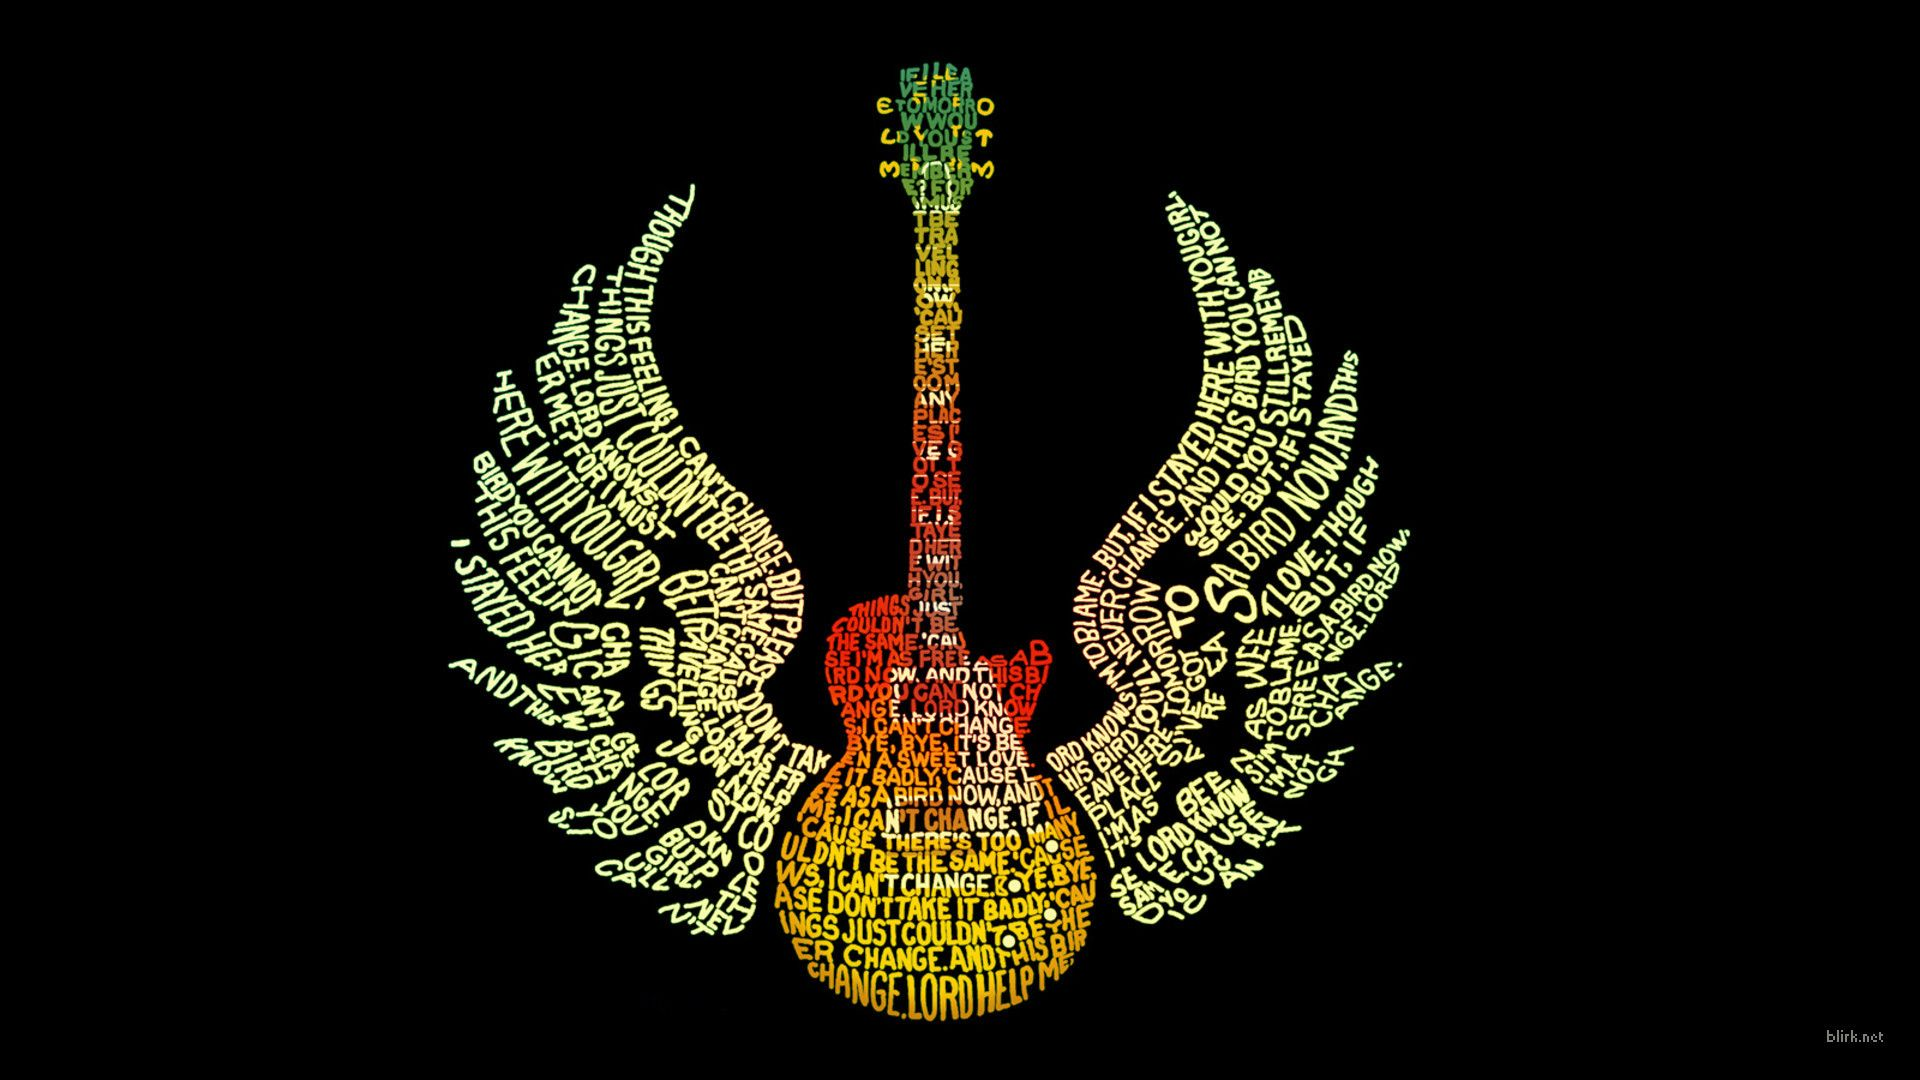 Guitar Wallpaper Pc 1920x1080 Download Hd Wallpaper Wallpapertip